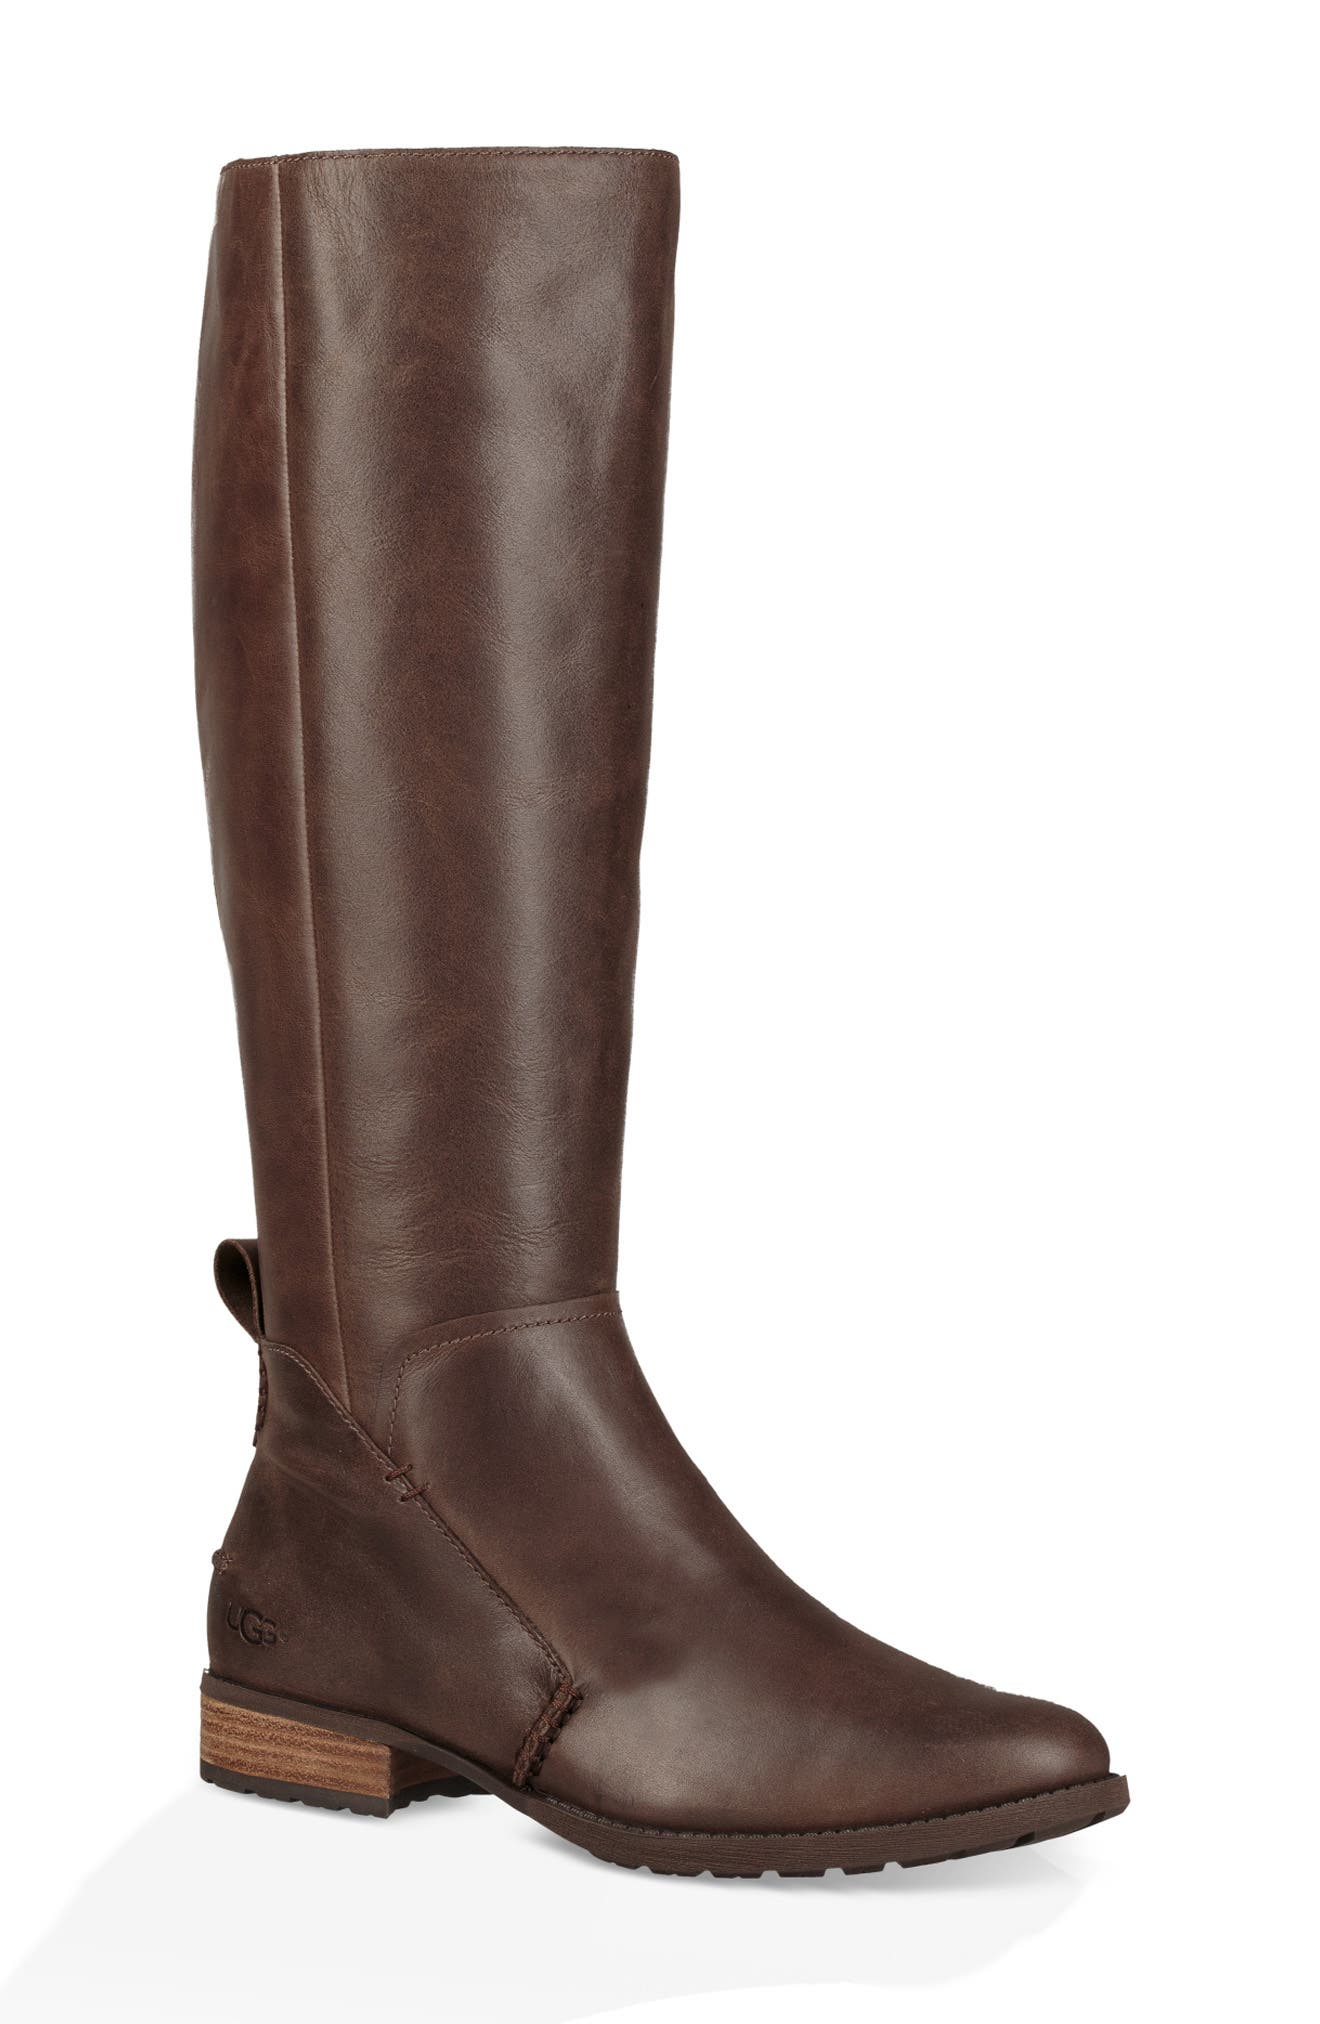 Leigh Knee High Riding Boot,                         Main,                         color, DARK BROWN LEATHER